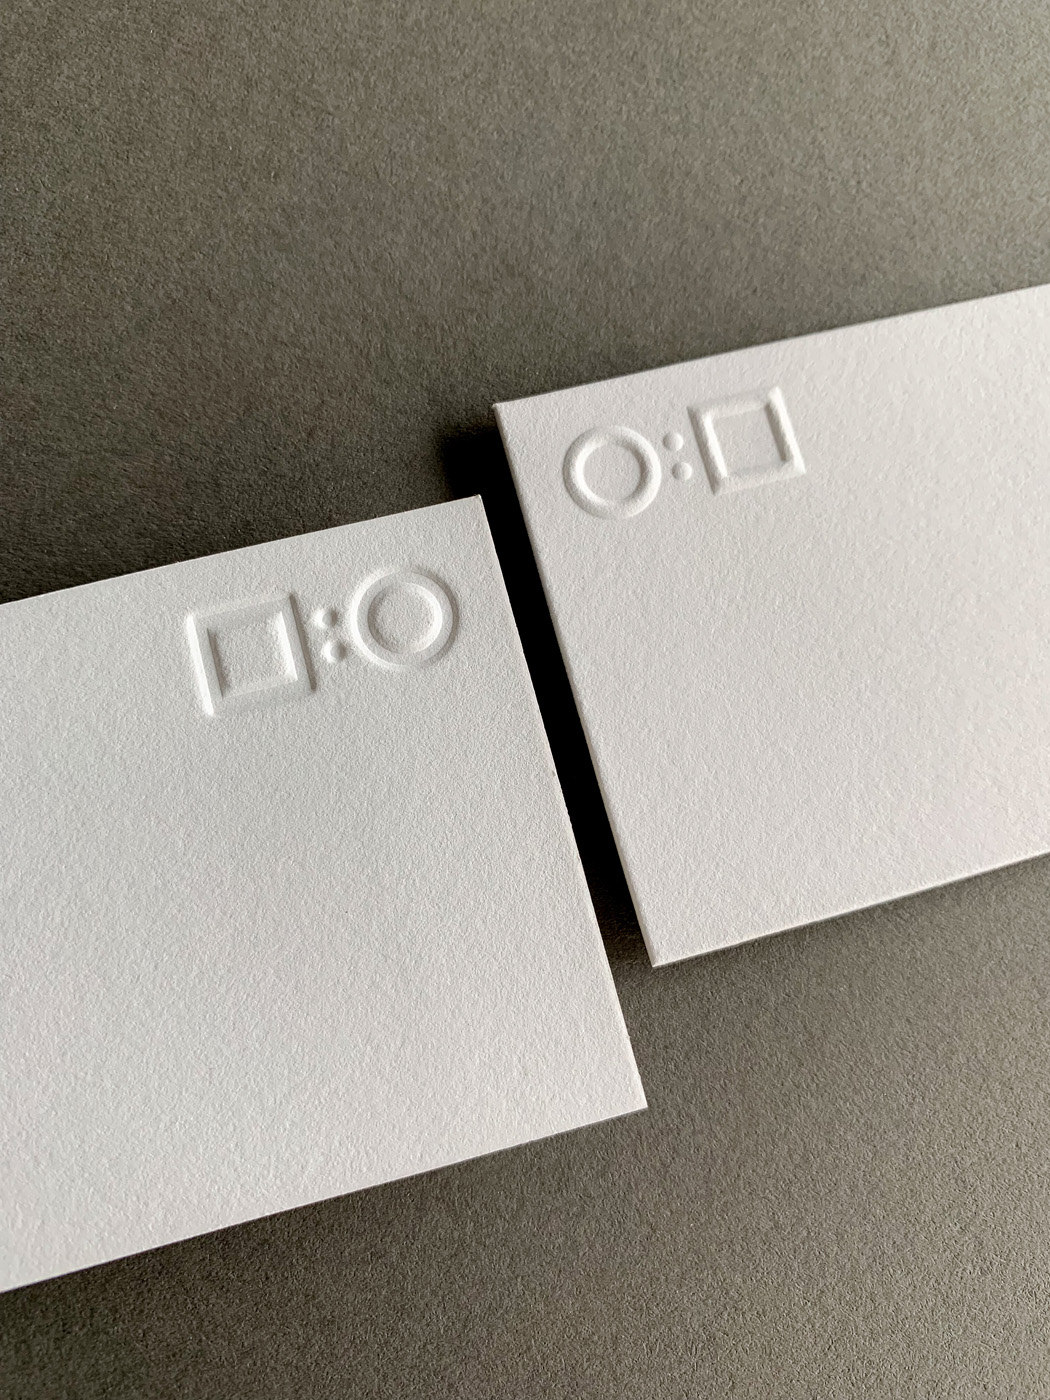 Embossed debossed letterpress business cards for SteelScale on Savoy 1